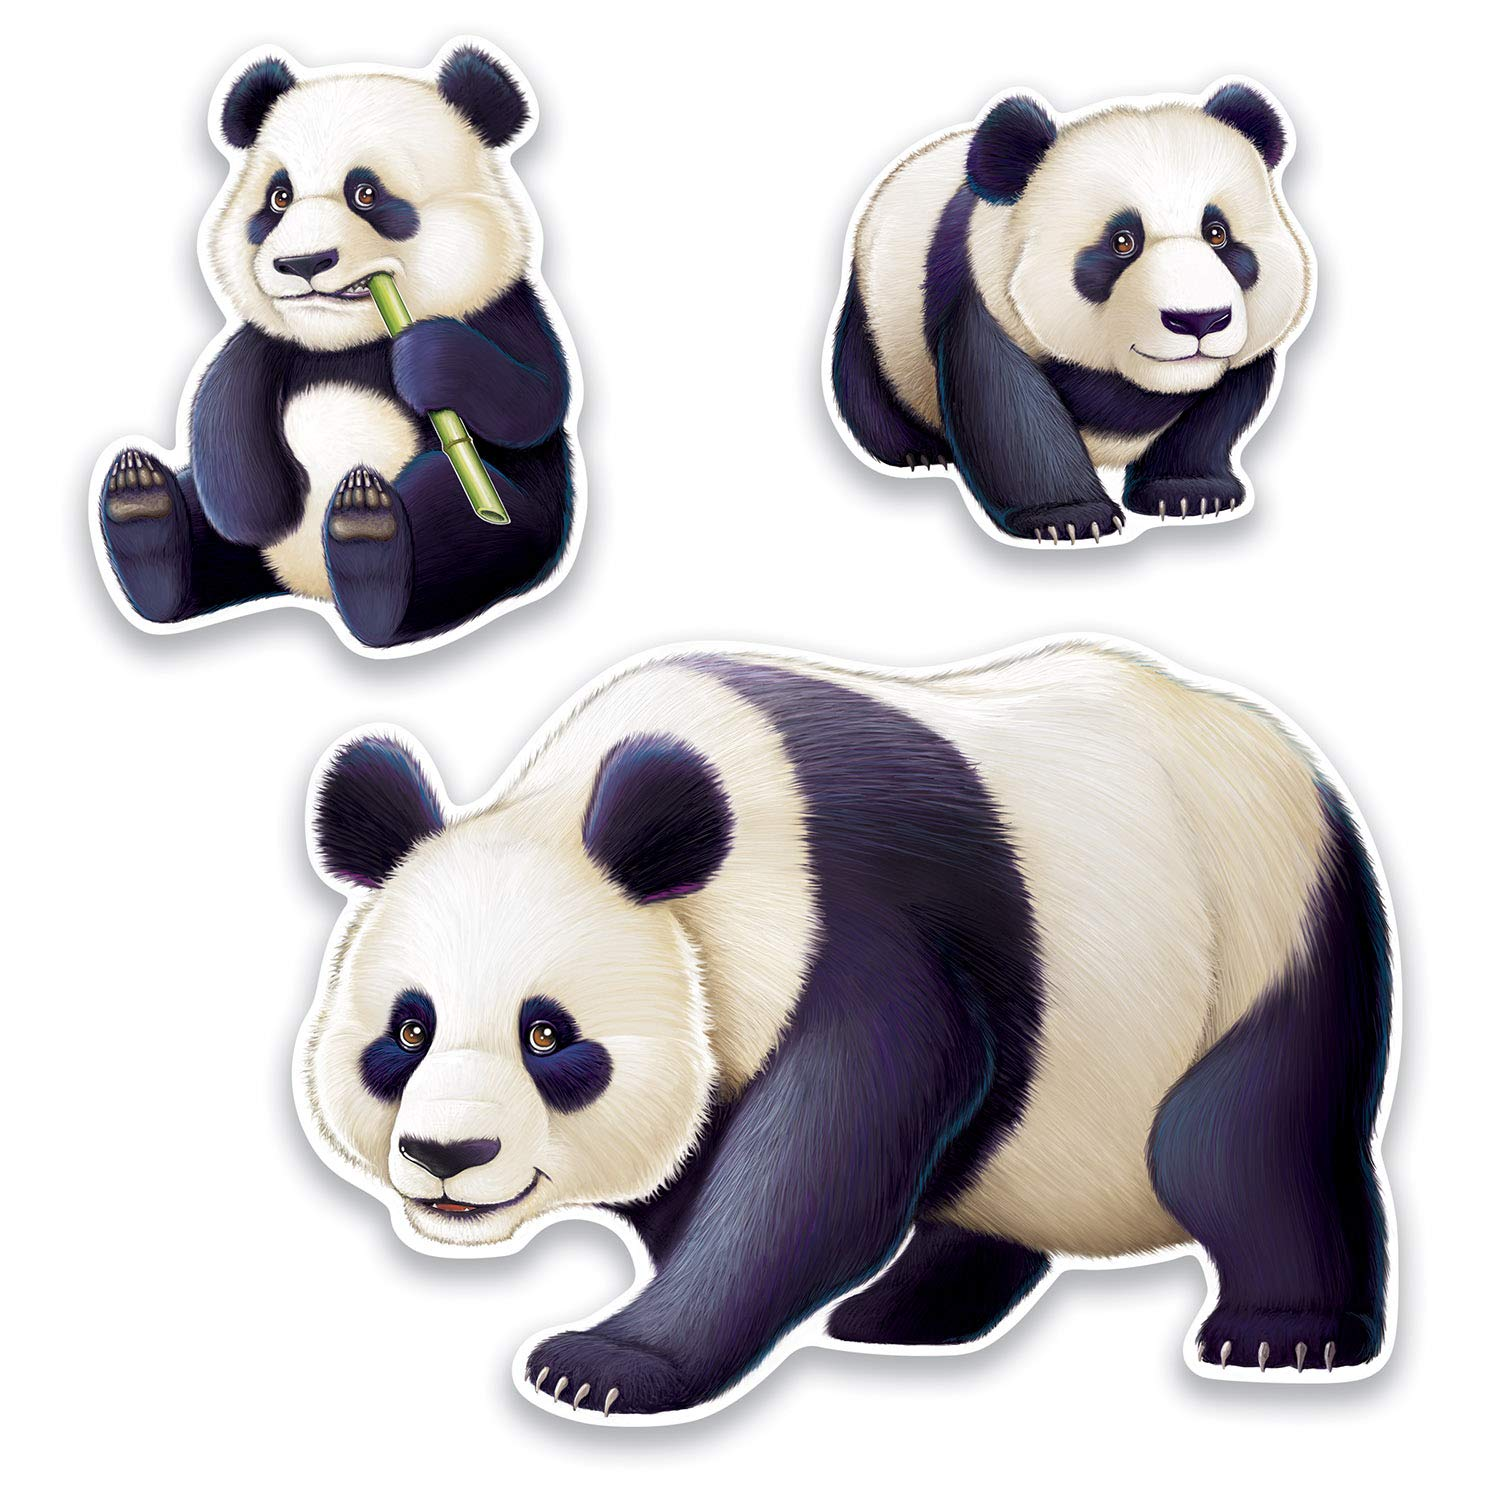 Beistle Asian Party Decoration Panda, Assorted Panda Cutouts 11.25 Inch to 25.25 Inch, Pack of 36